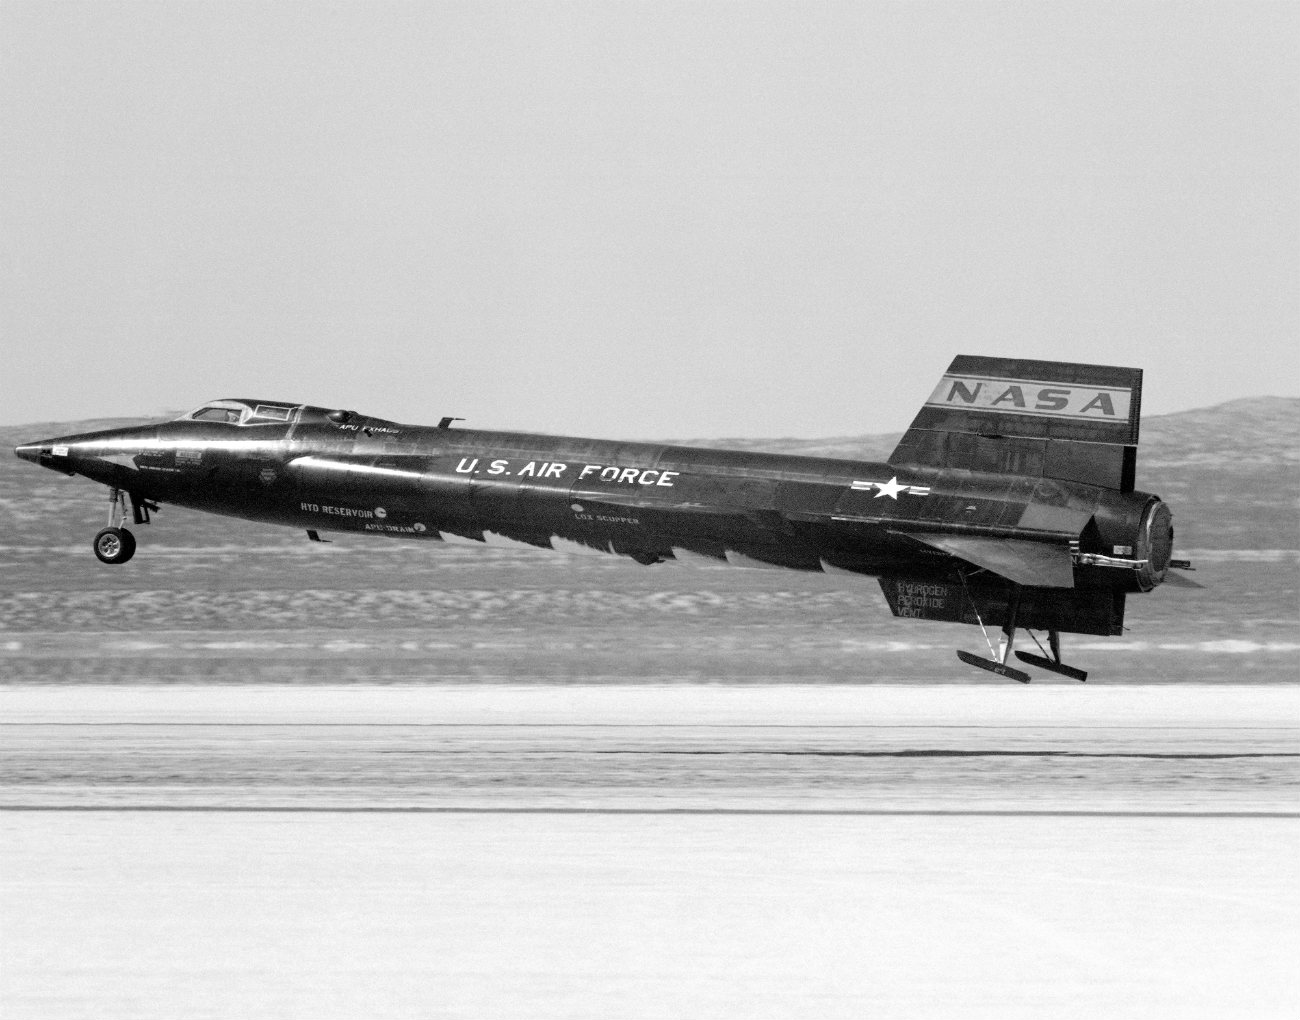 North American Aviation X-15 taking off